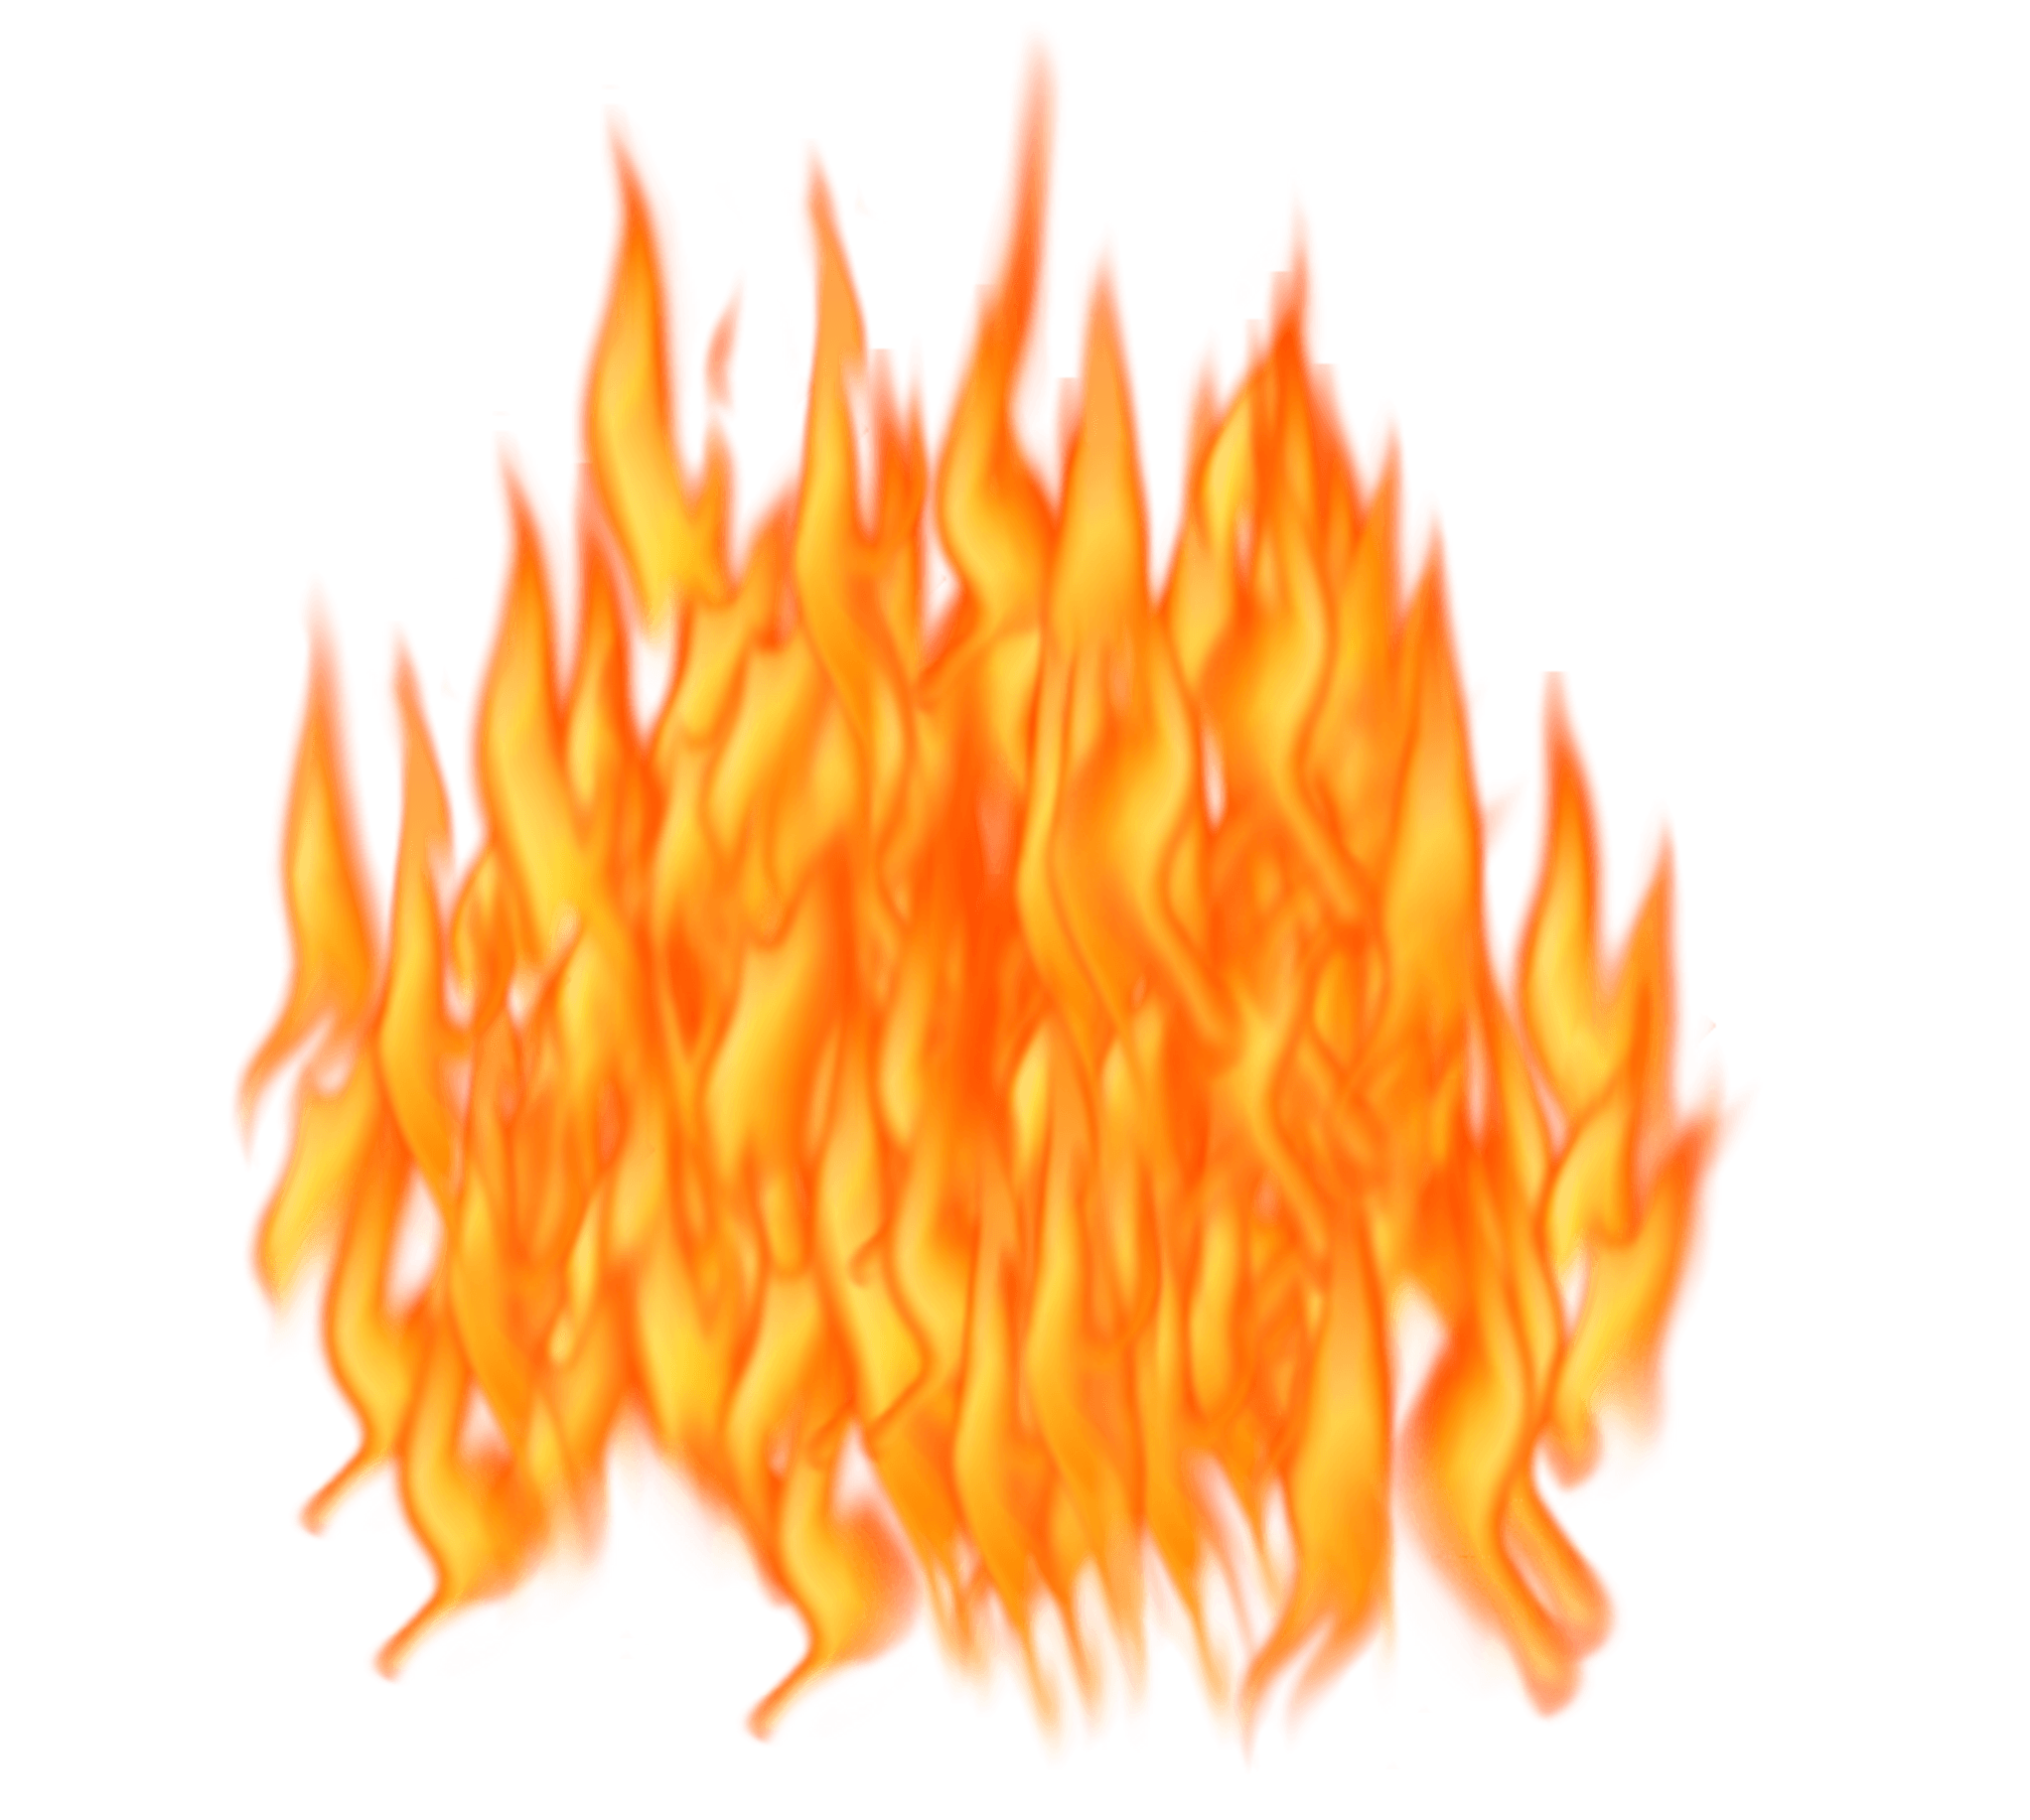 Download Fire Flame Png Image Hq Png Image Freepngimg